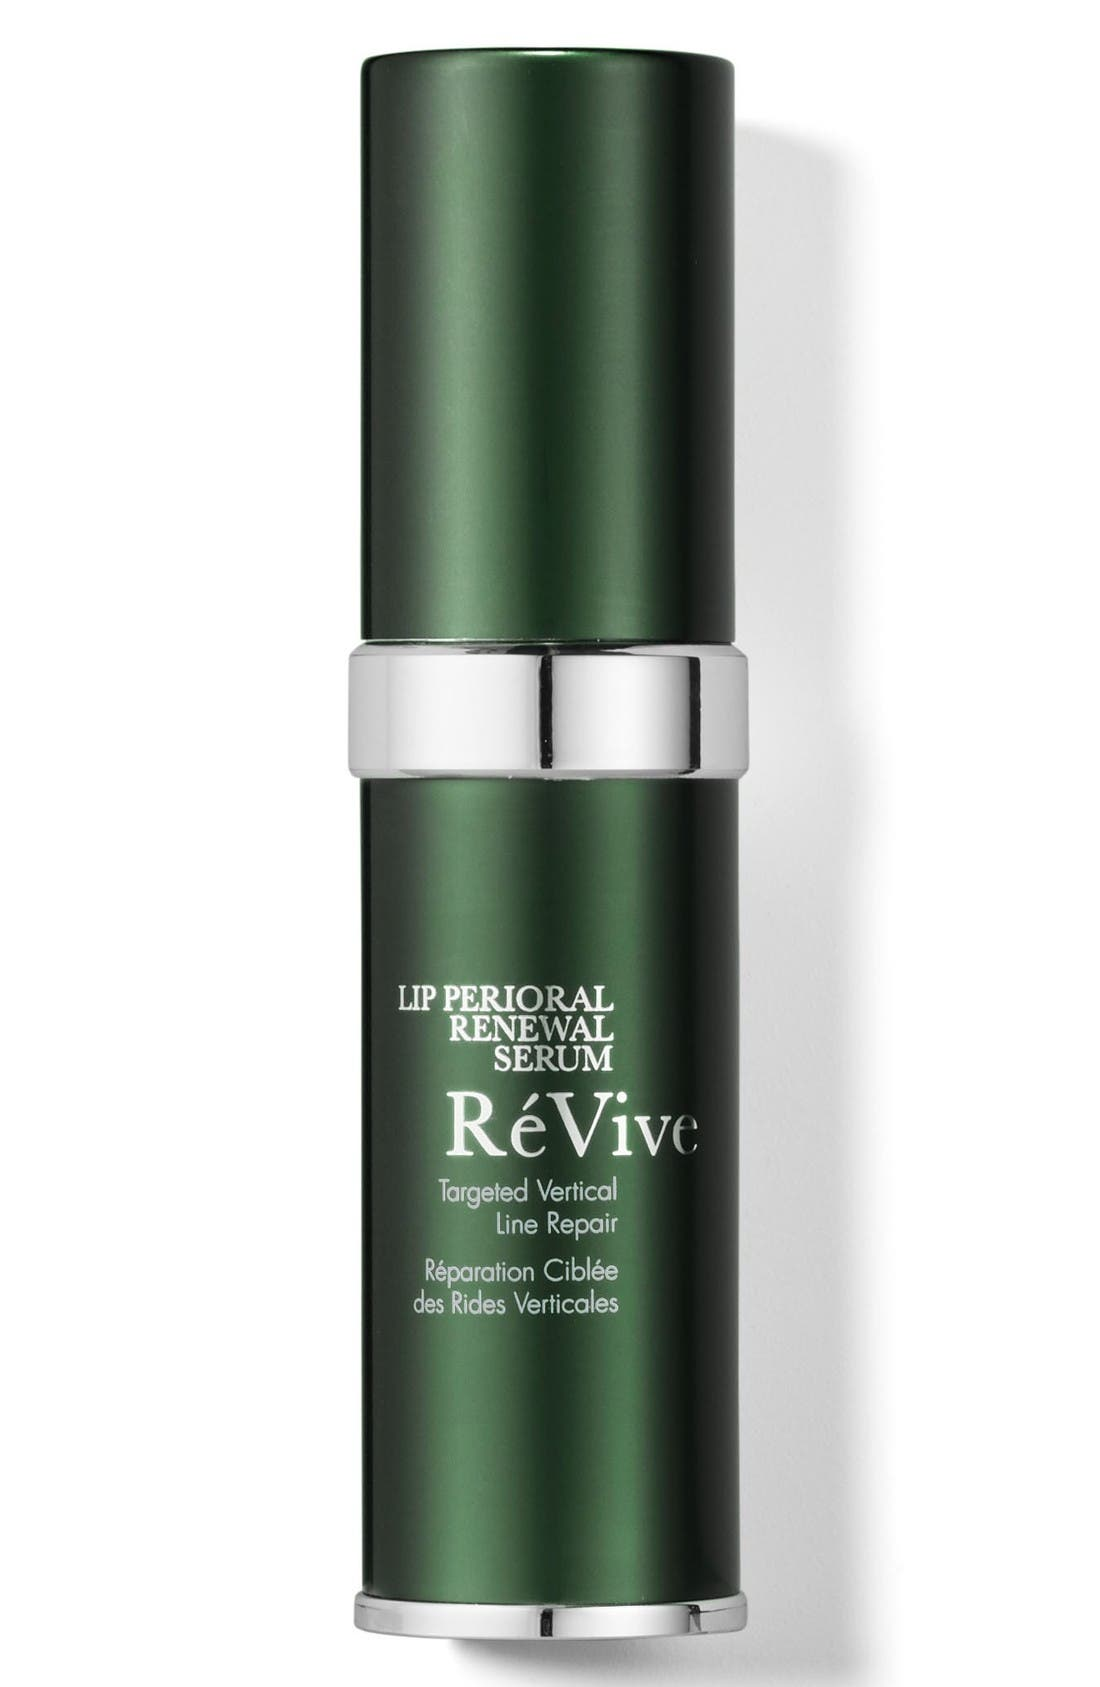 RéVive® Lip & Perioral Renewal Serum